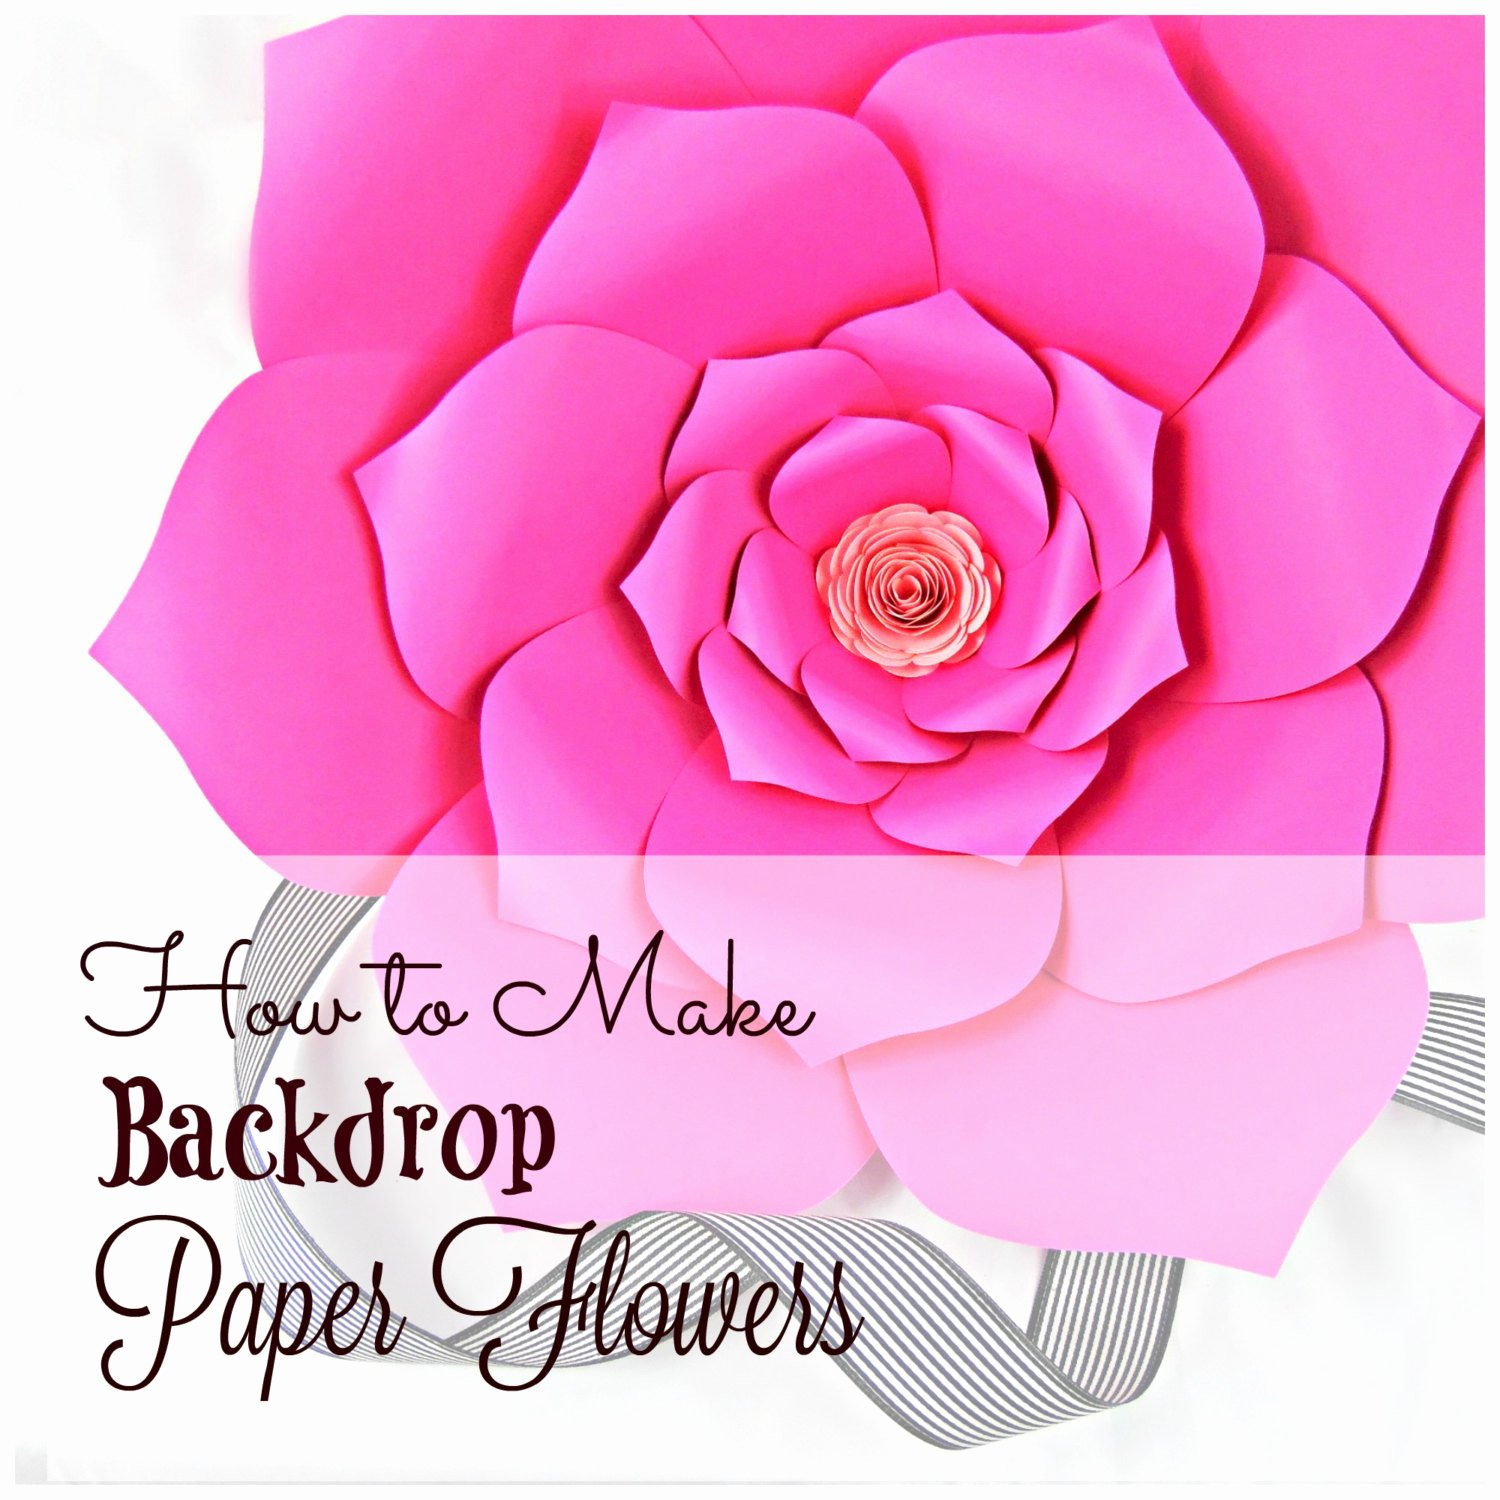 Templates for Paper Flowers Fresh Giant Paper Flowers Pattern Templates & Tutorials